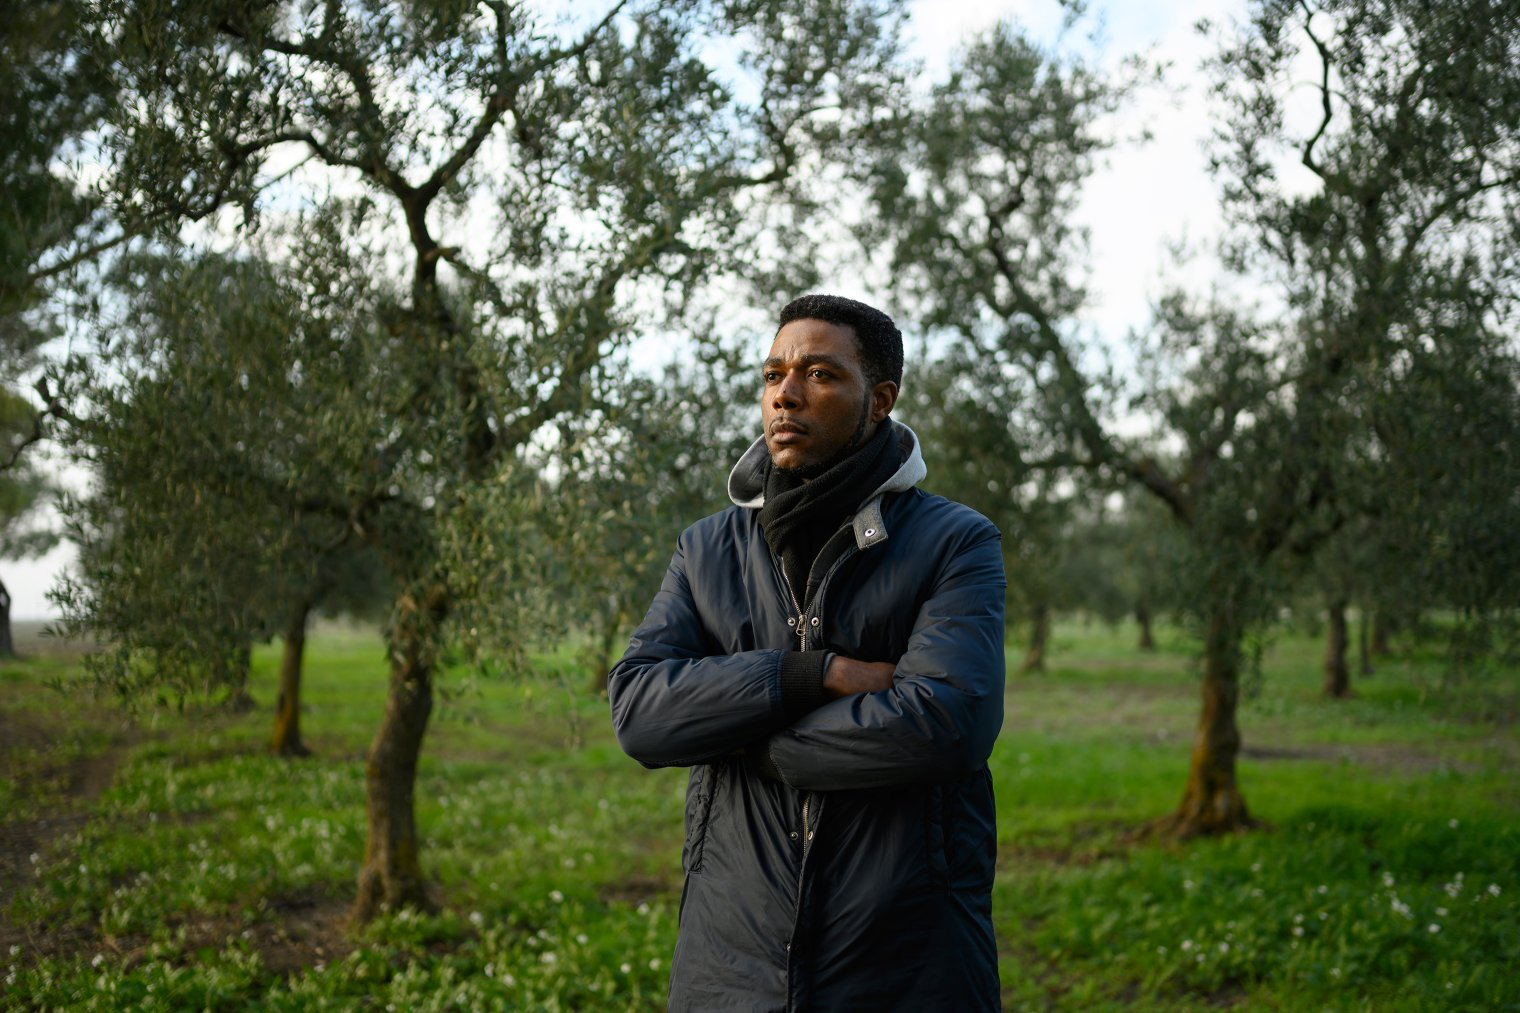 Sagnet, 33, an anti-slavery activist from Cameroon who has been living in Italy since 2010, stands in the olive groves around Foggia, Italy, Dec. 4, 2018.